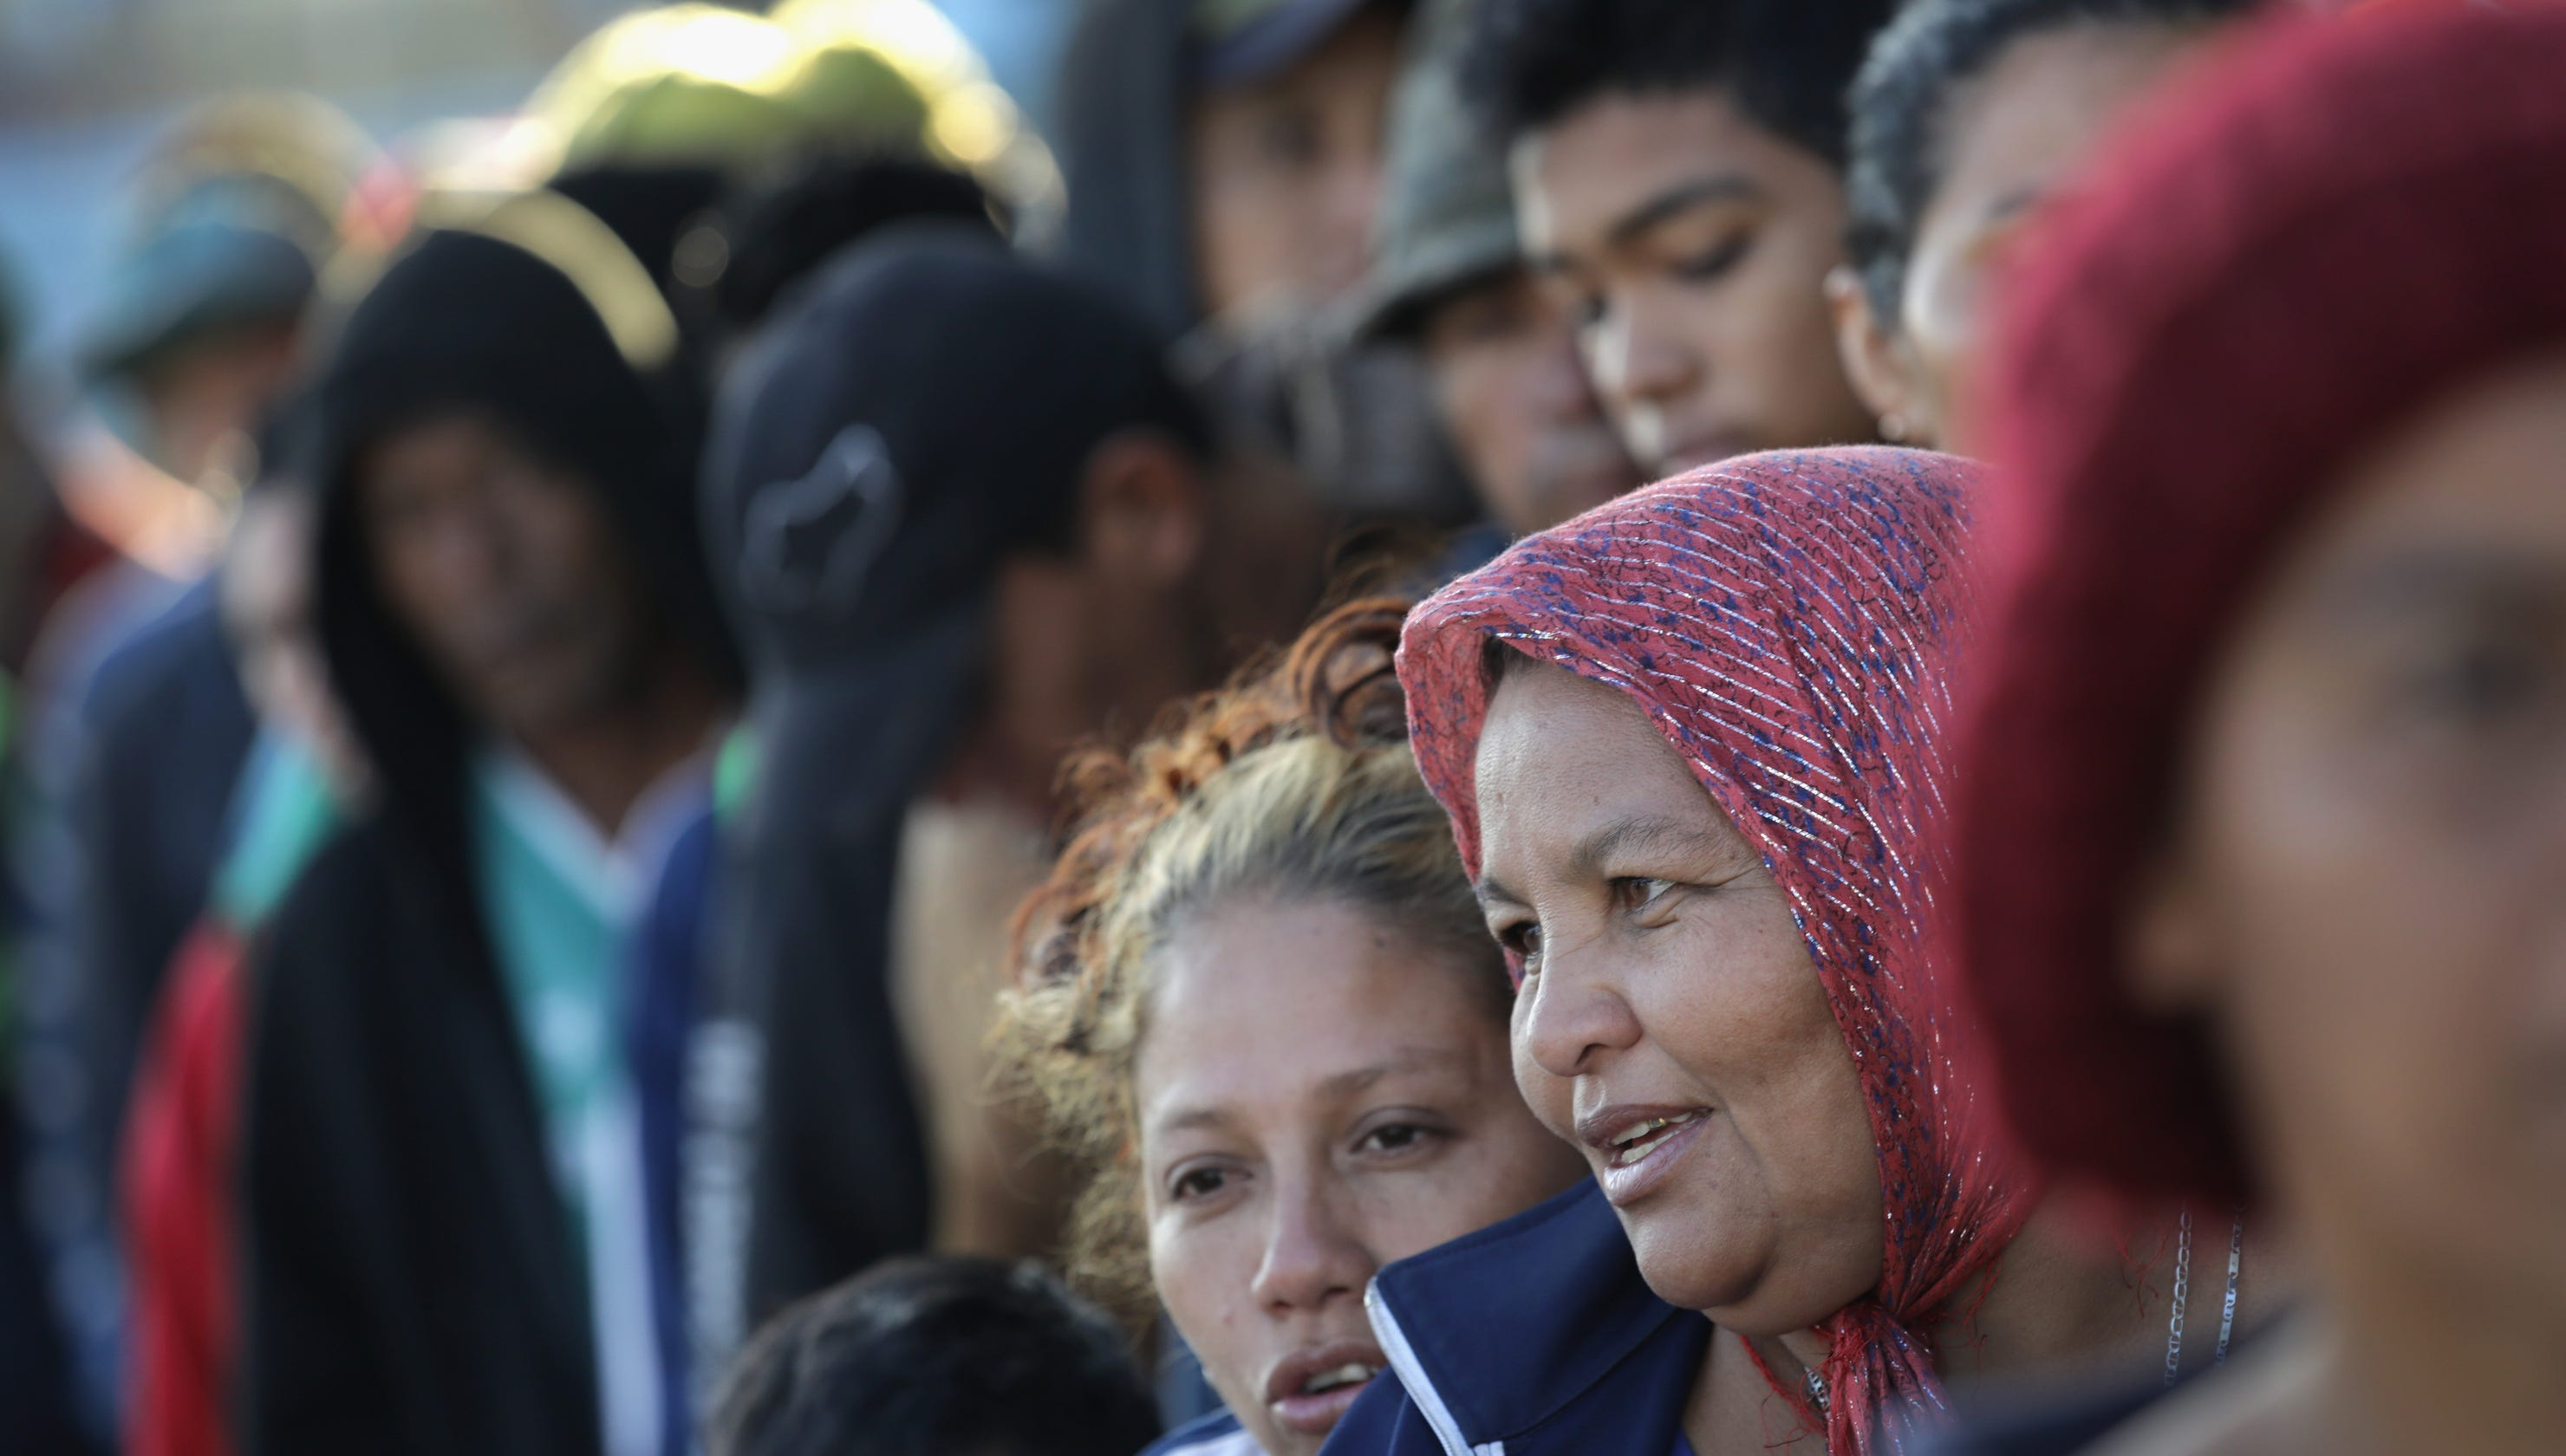 Judge blocks Trump's asylum rules, opens door for ...